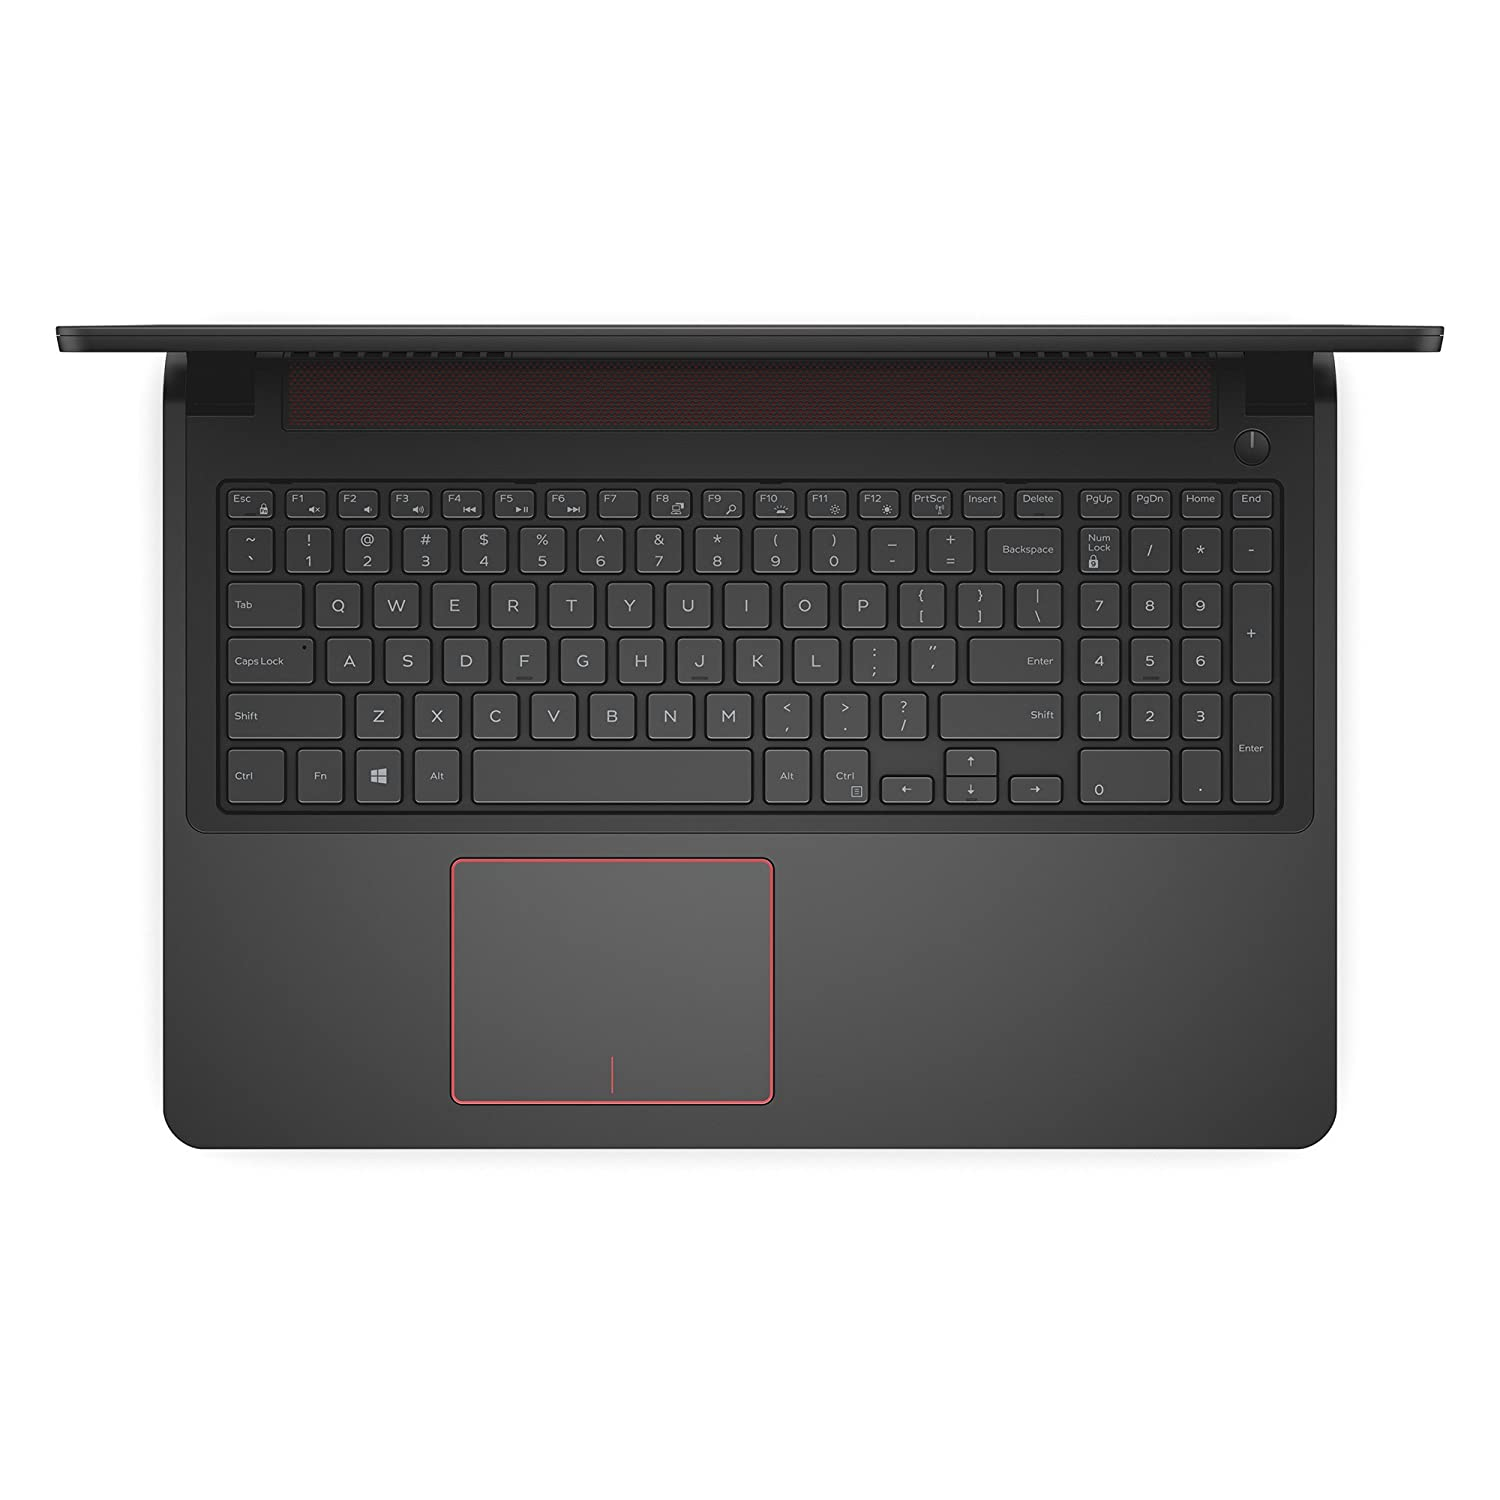 a2a736eb405be Amazon.com  Dell Inspiron i7559-2512BLK 15.6 Inch FHD Laptop (6th  Generation Intel Core i7